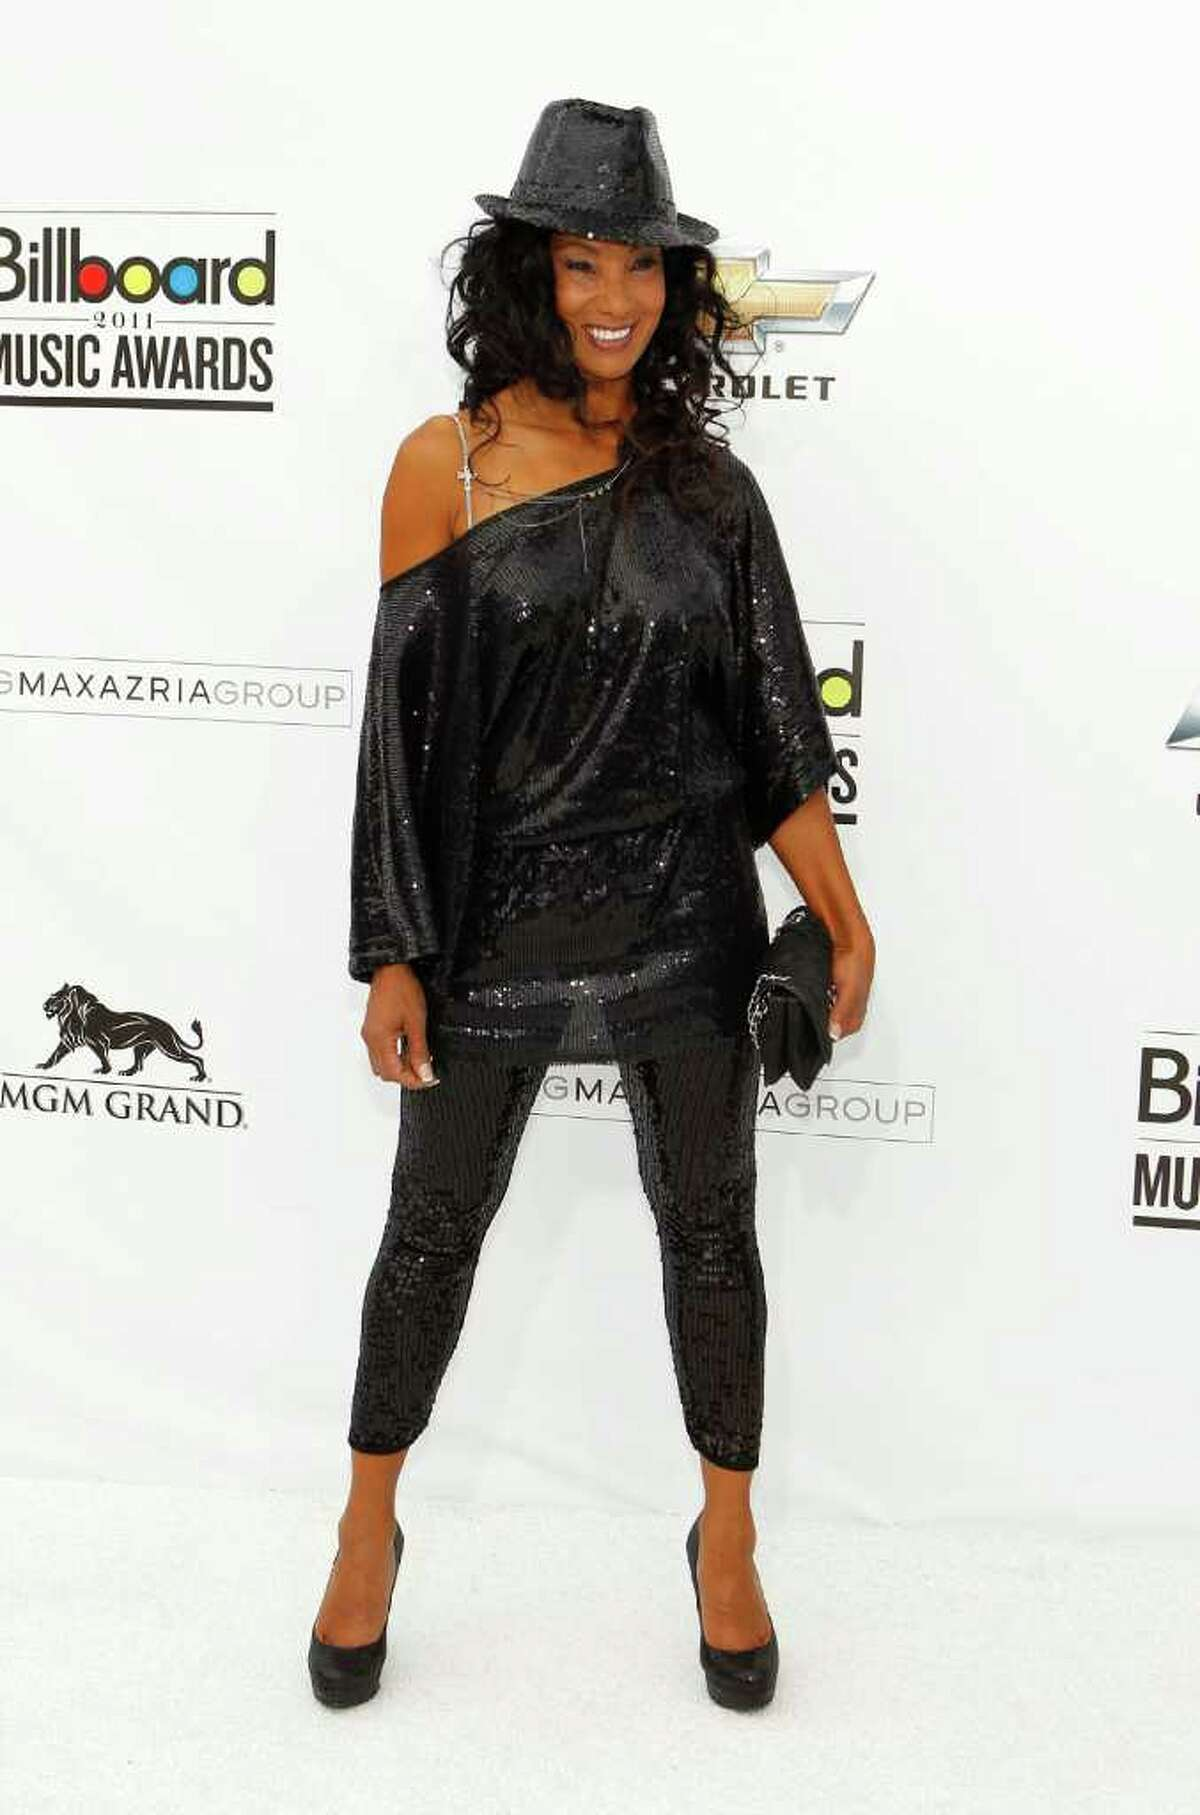 """Downtown Julie Brown: Brown, an English import, was the host of the dance show """"Club MTV"""" from 1985-1992, gaining fame with her catchphrase, """"Wubba wubba wubba."""" After the show was canceled, Brown went on to several roles in B-movies and appeared in Playboy in 1998. She married Martin Schuermann in 2001 and lives in California with her husband and daughter, Gianna Schuermann."""